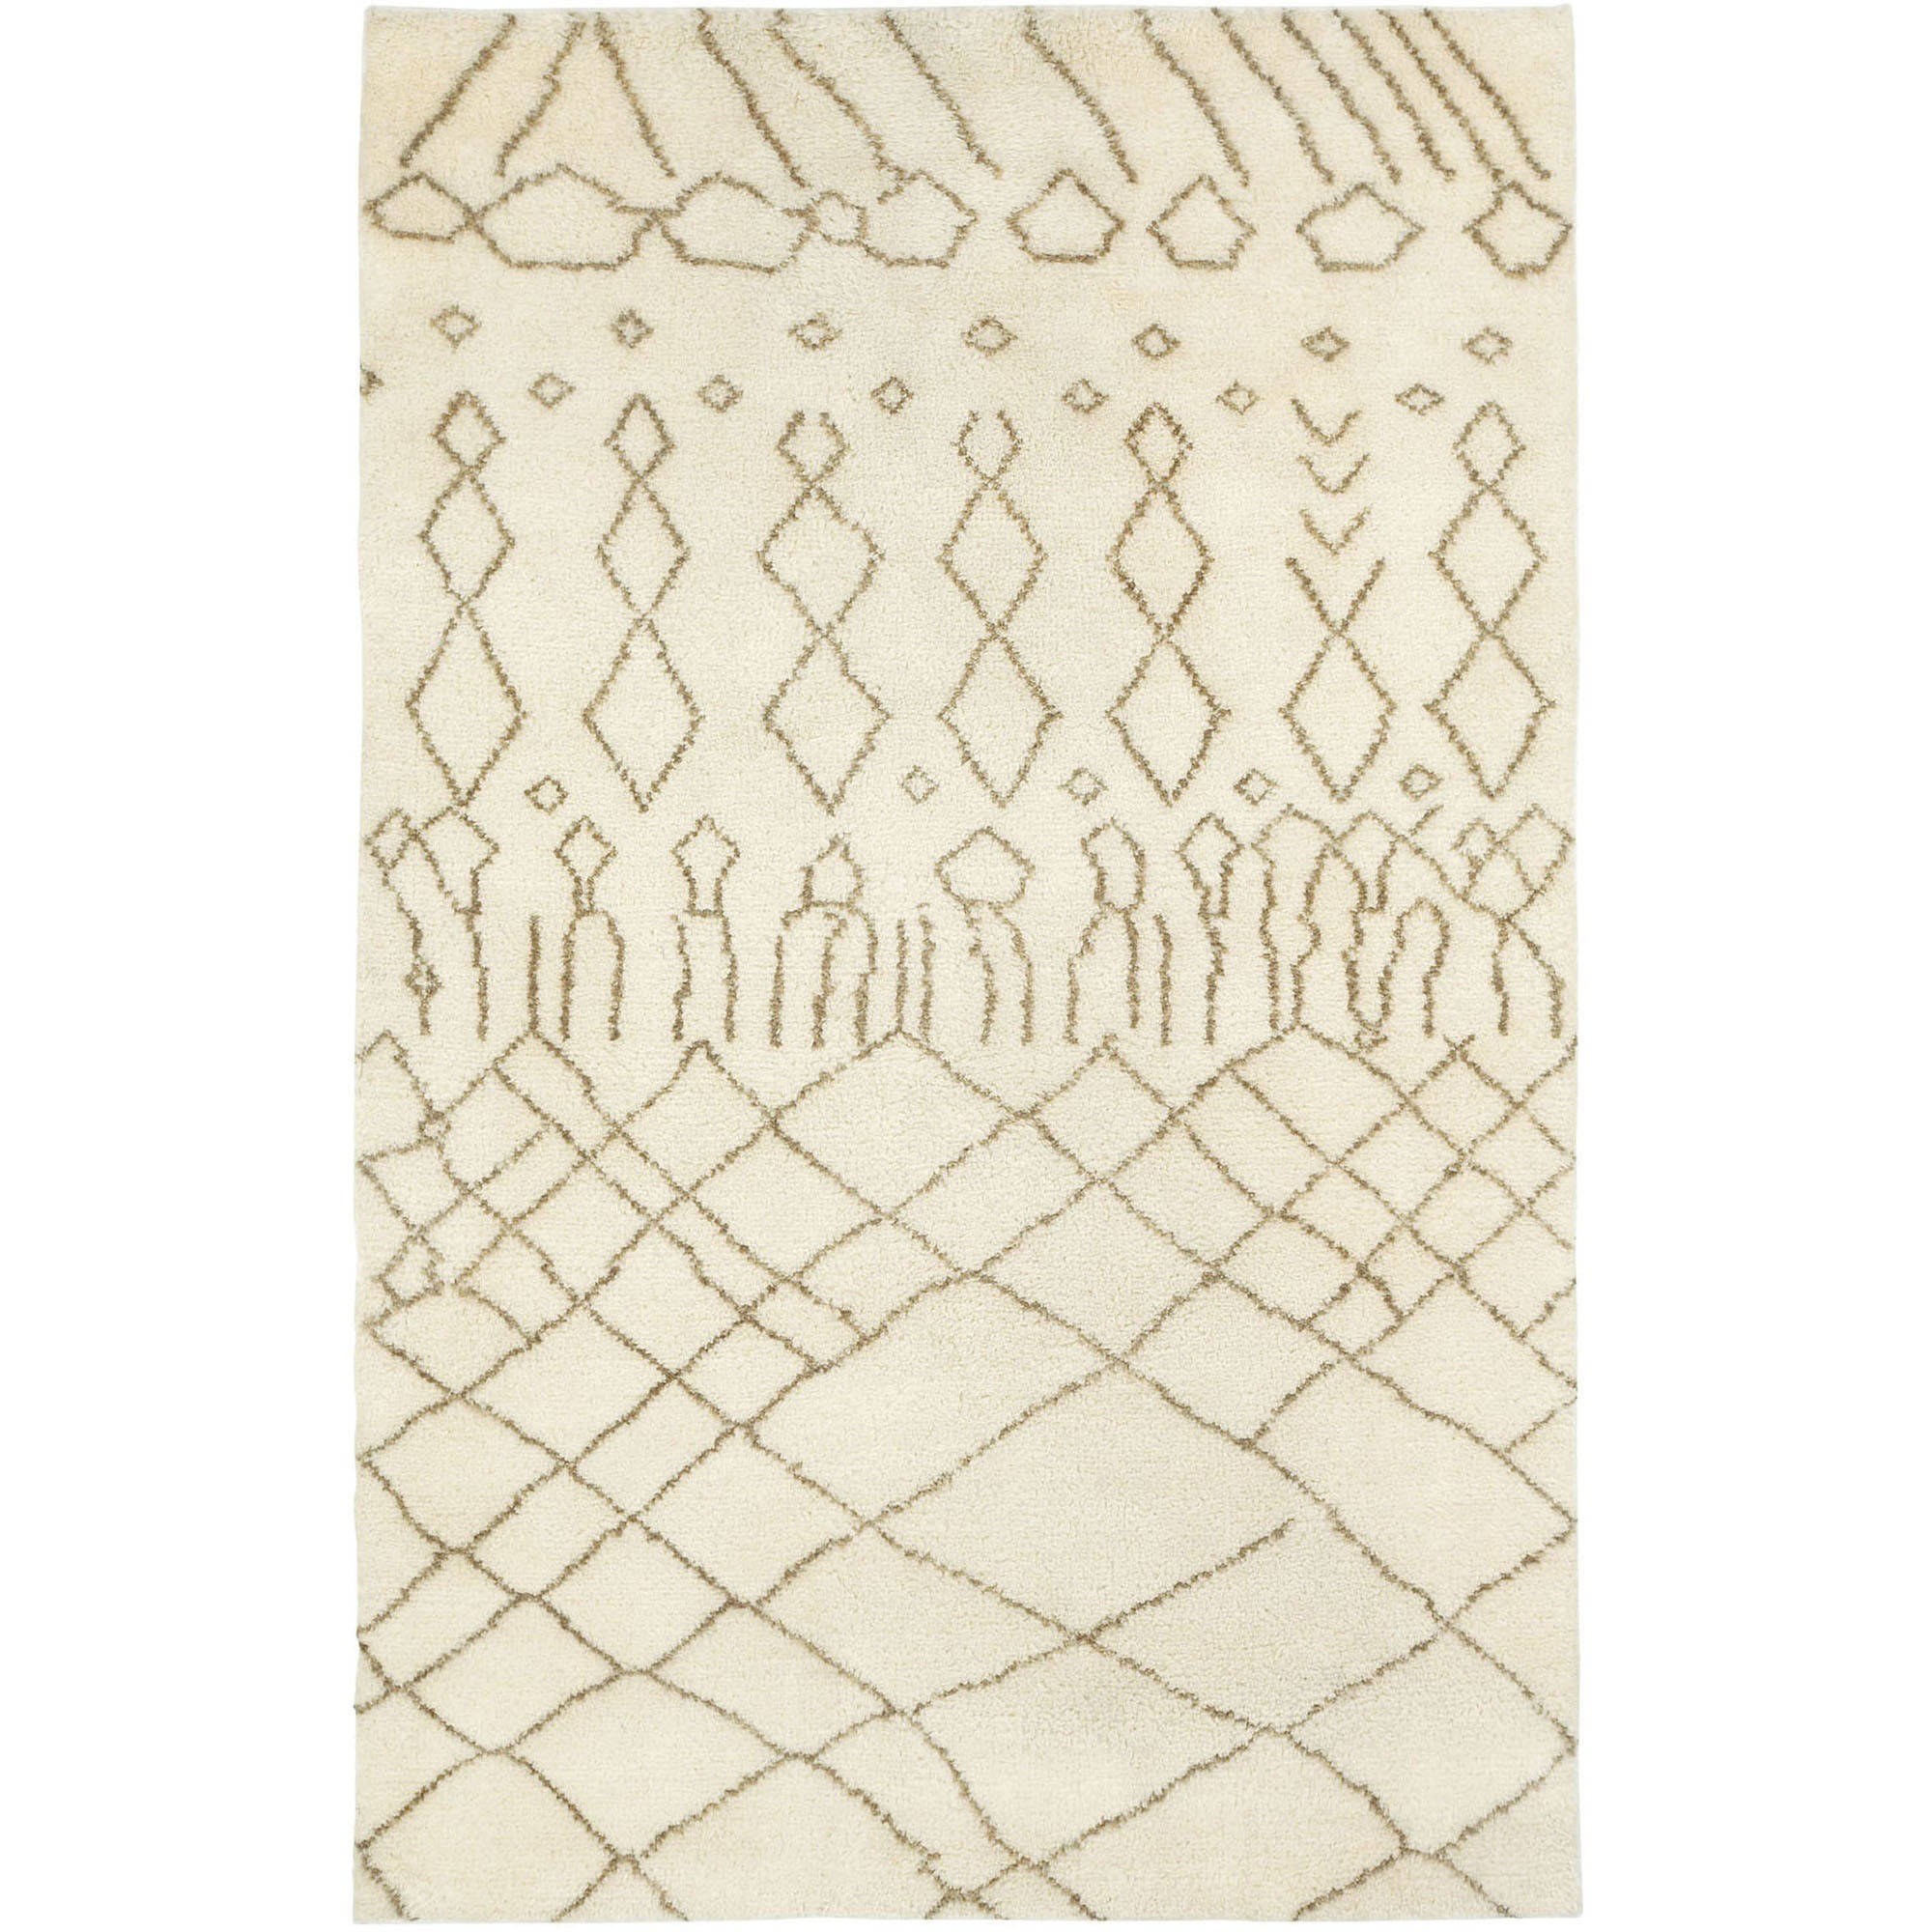 Fortress Marrakesh Hand-Knotted Area Rug